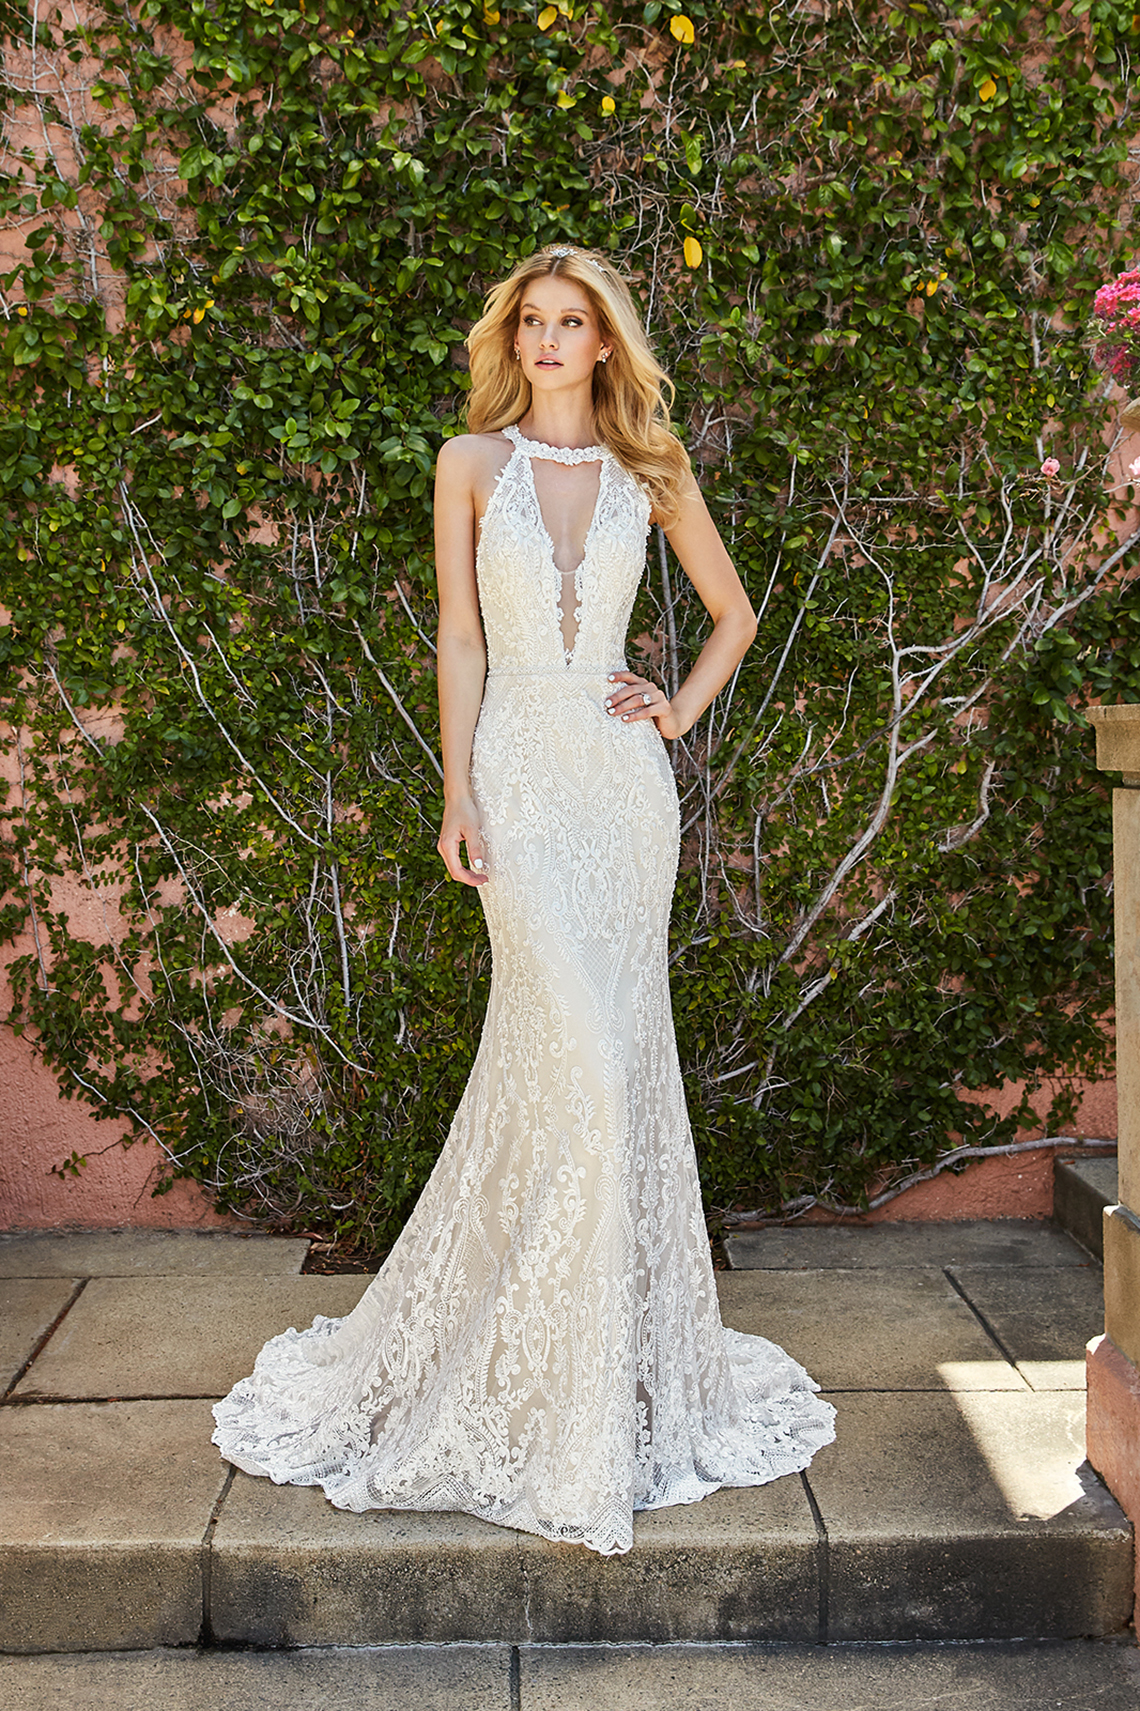 10 Stunning Wedding Dresses By Destination – Val Stefani Savona Dress 1